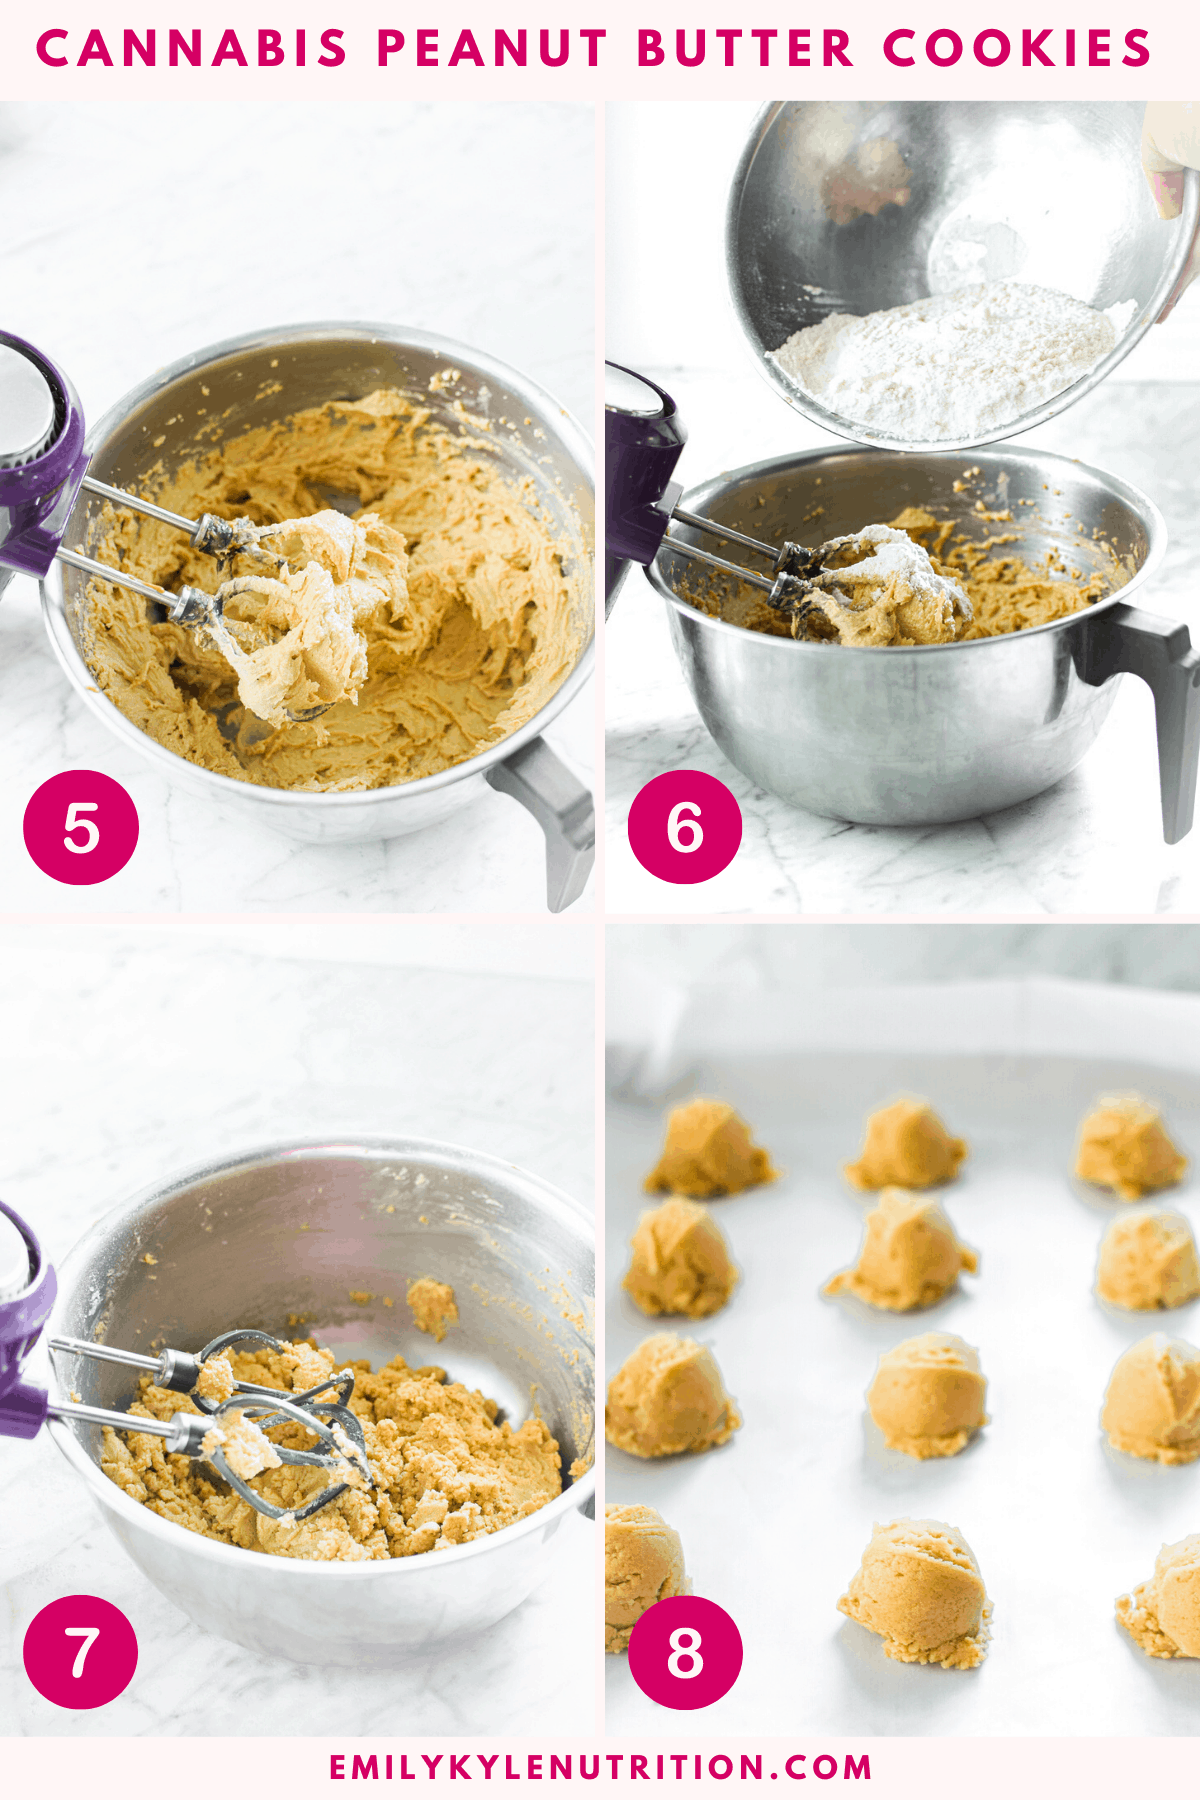 A collage images showing steps 5-8 for making cannabis peanut butter cookies including adding the flour to the dough and scooping it out into balls